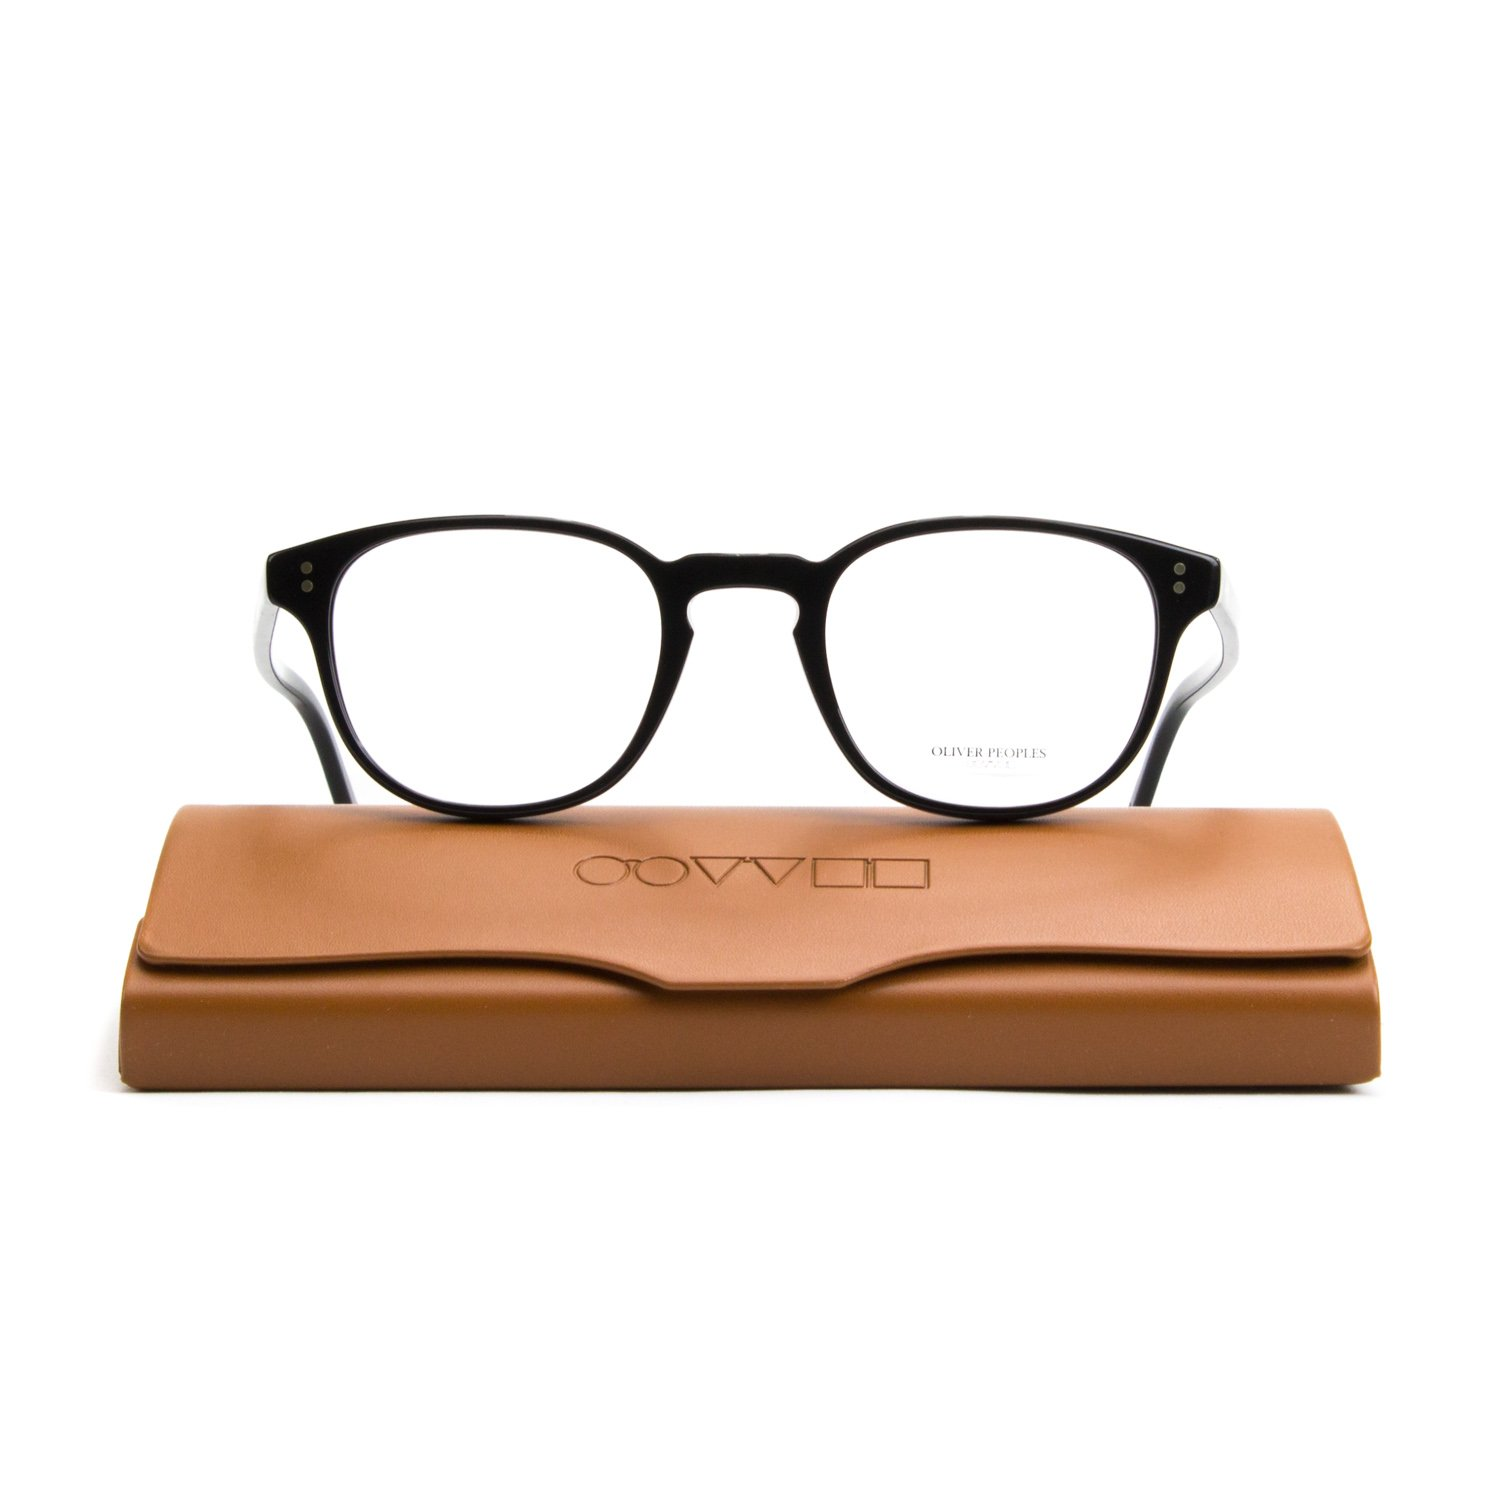 Oliver Peoples OV5219 Fairmont Eyeglasses 1005 Black RX Prescription ...